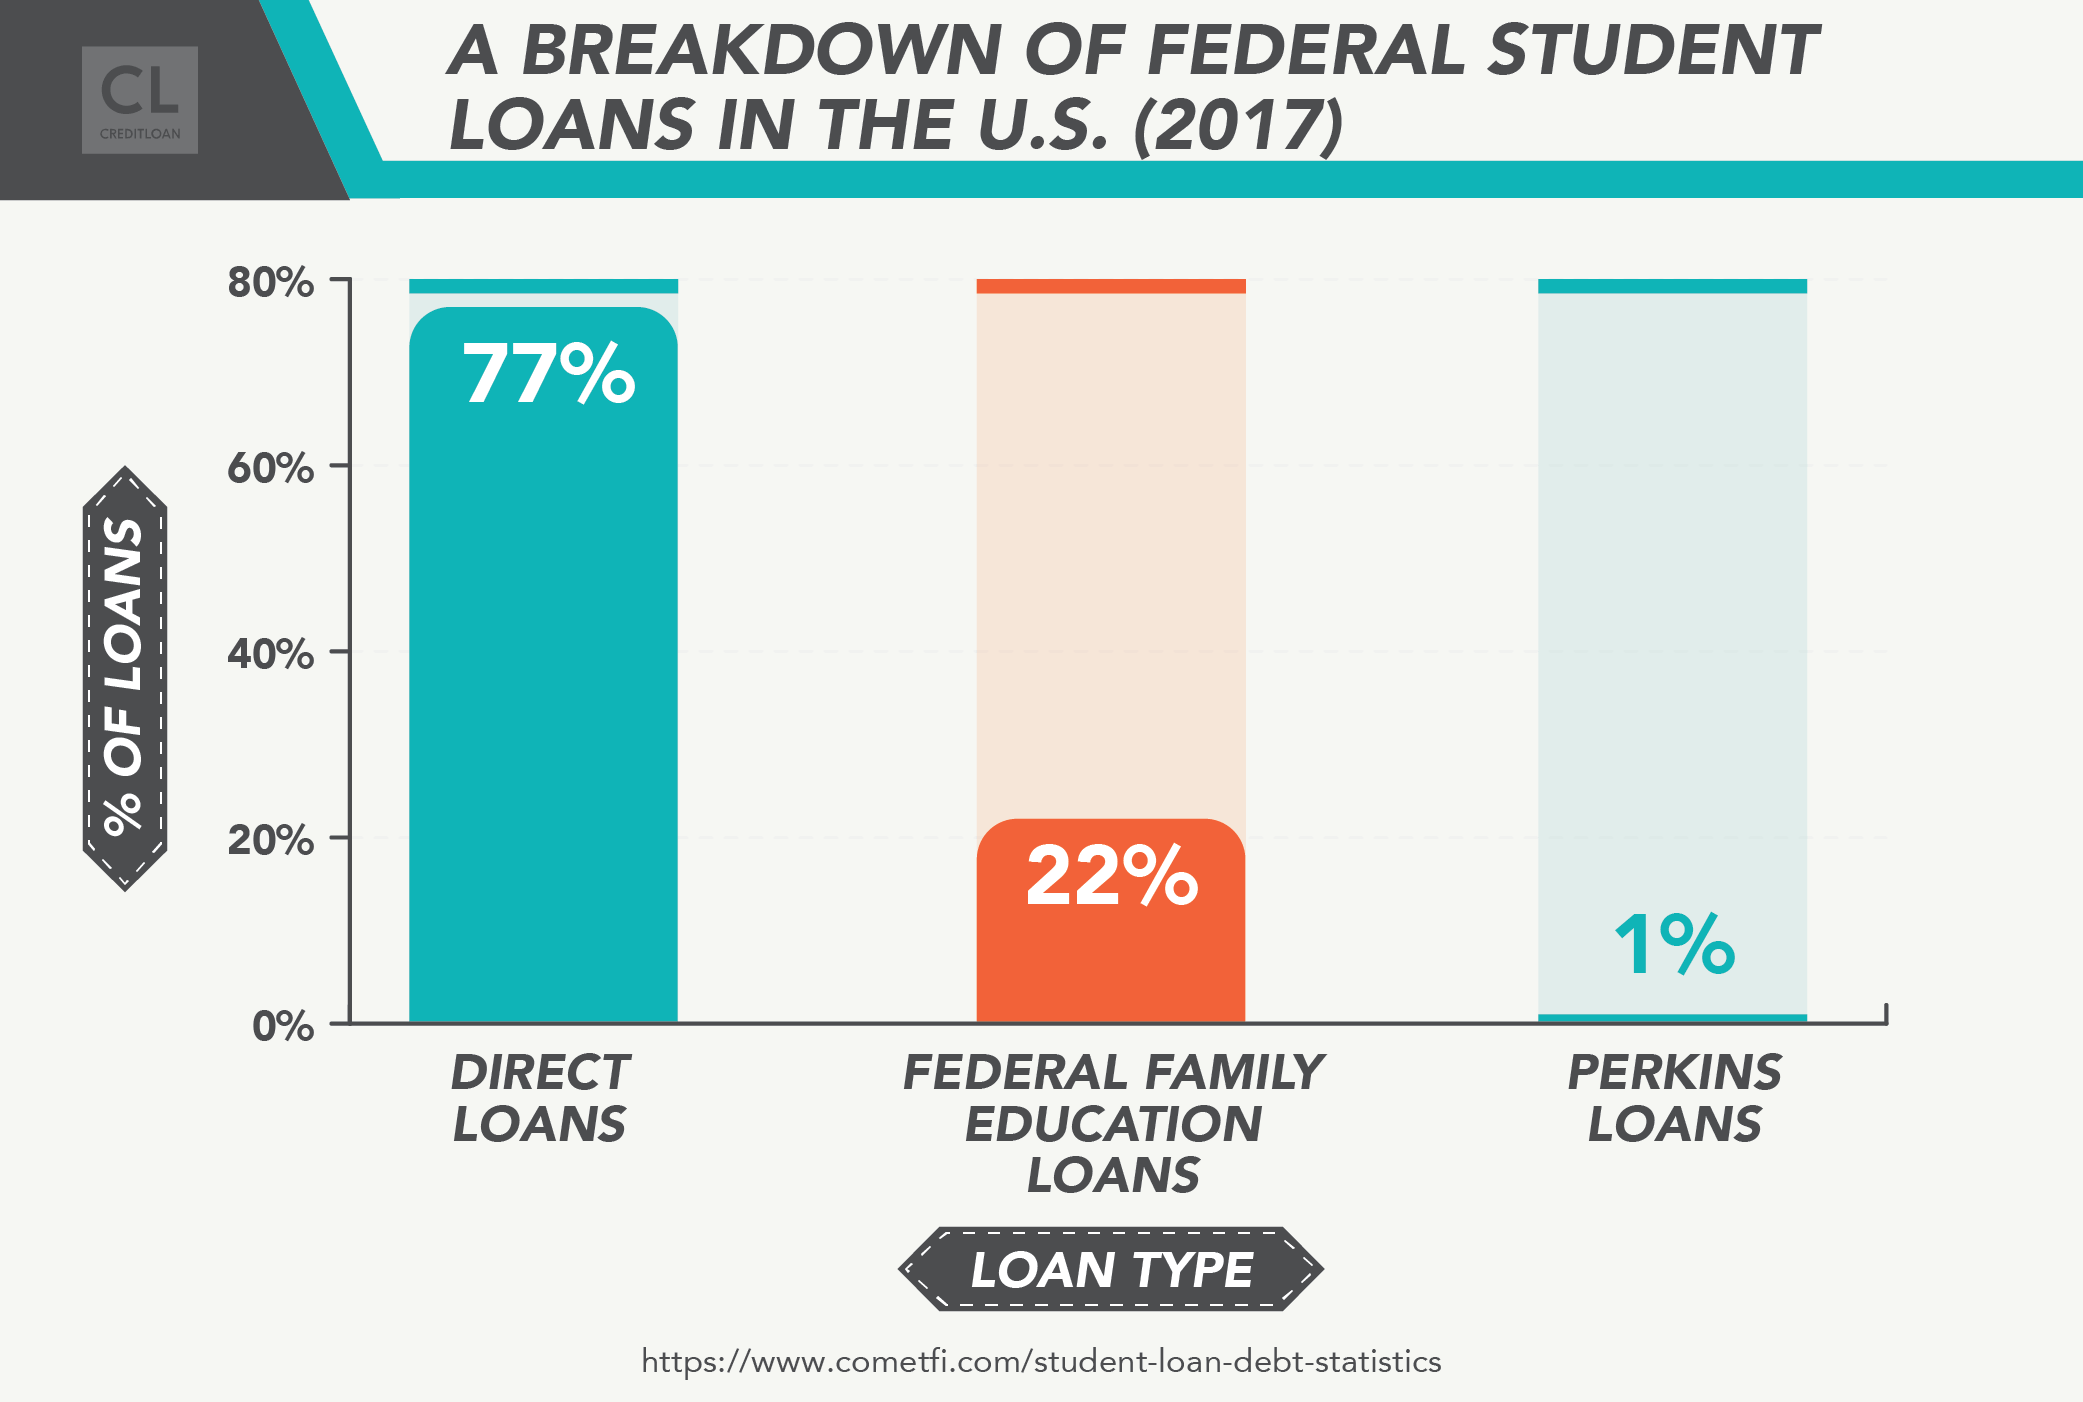 A Breakdown Of Federal Student Loans in the U.S. (2017)